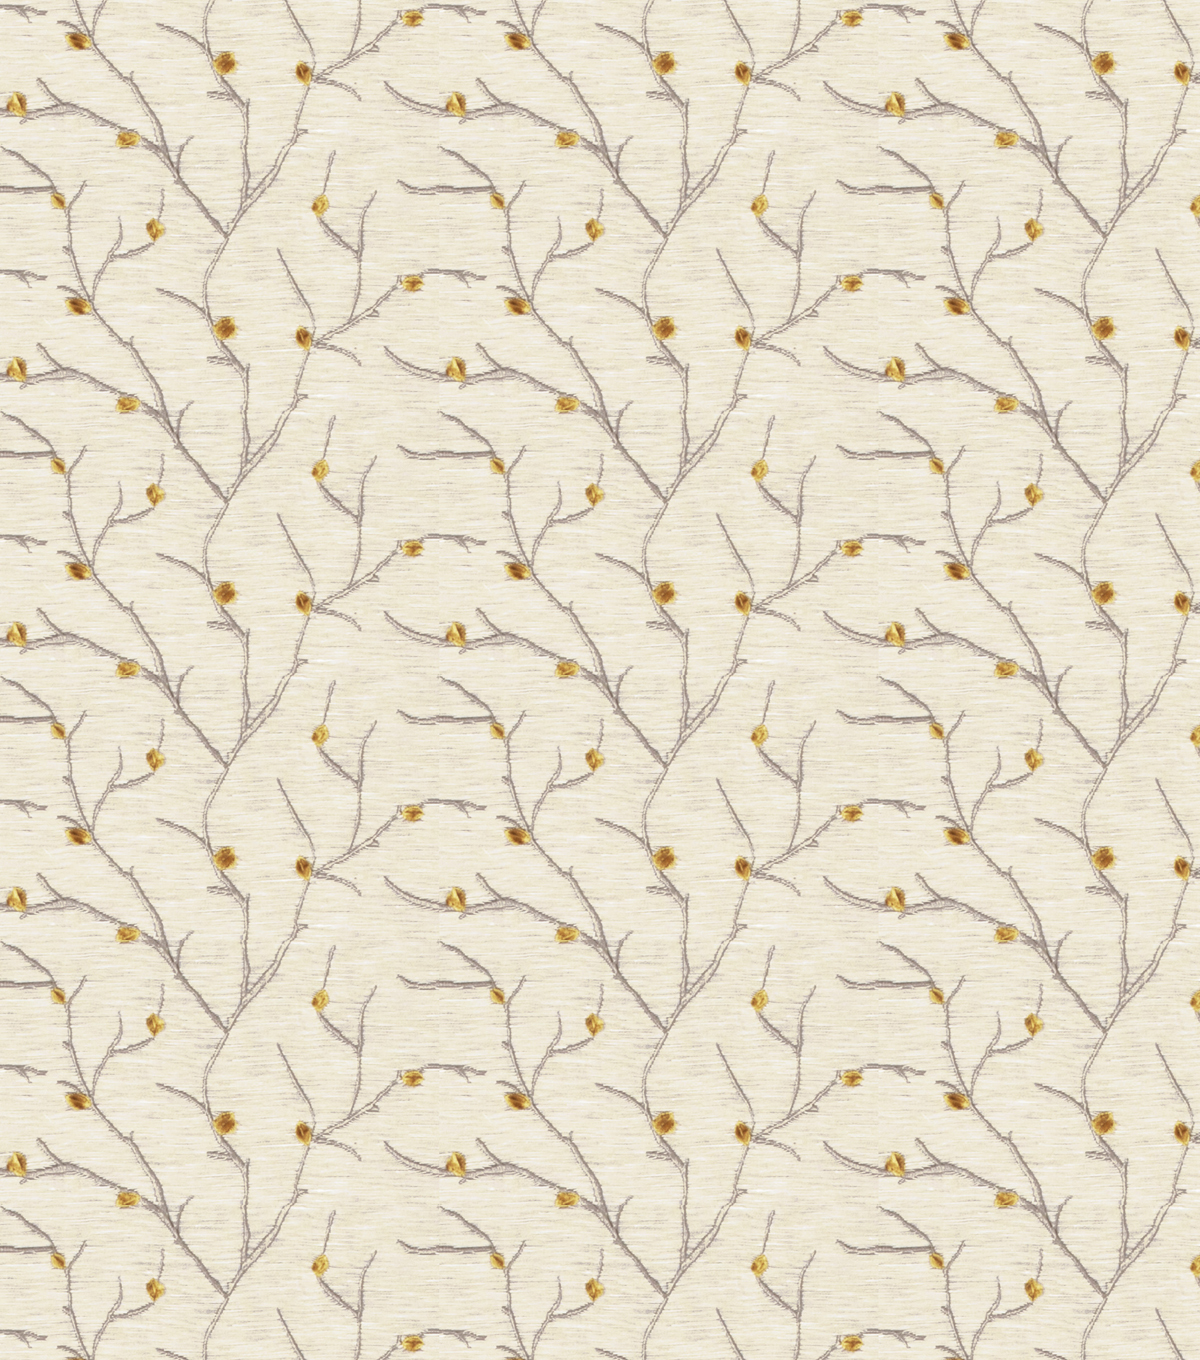 Home Decor 8x8 Fabric Swatch-Eaton Square Remedy Goldleaf